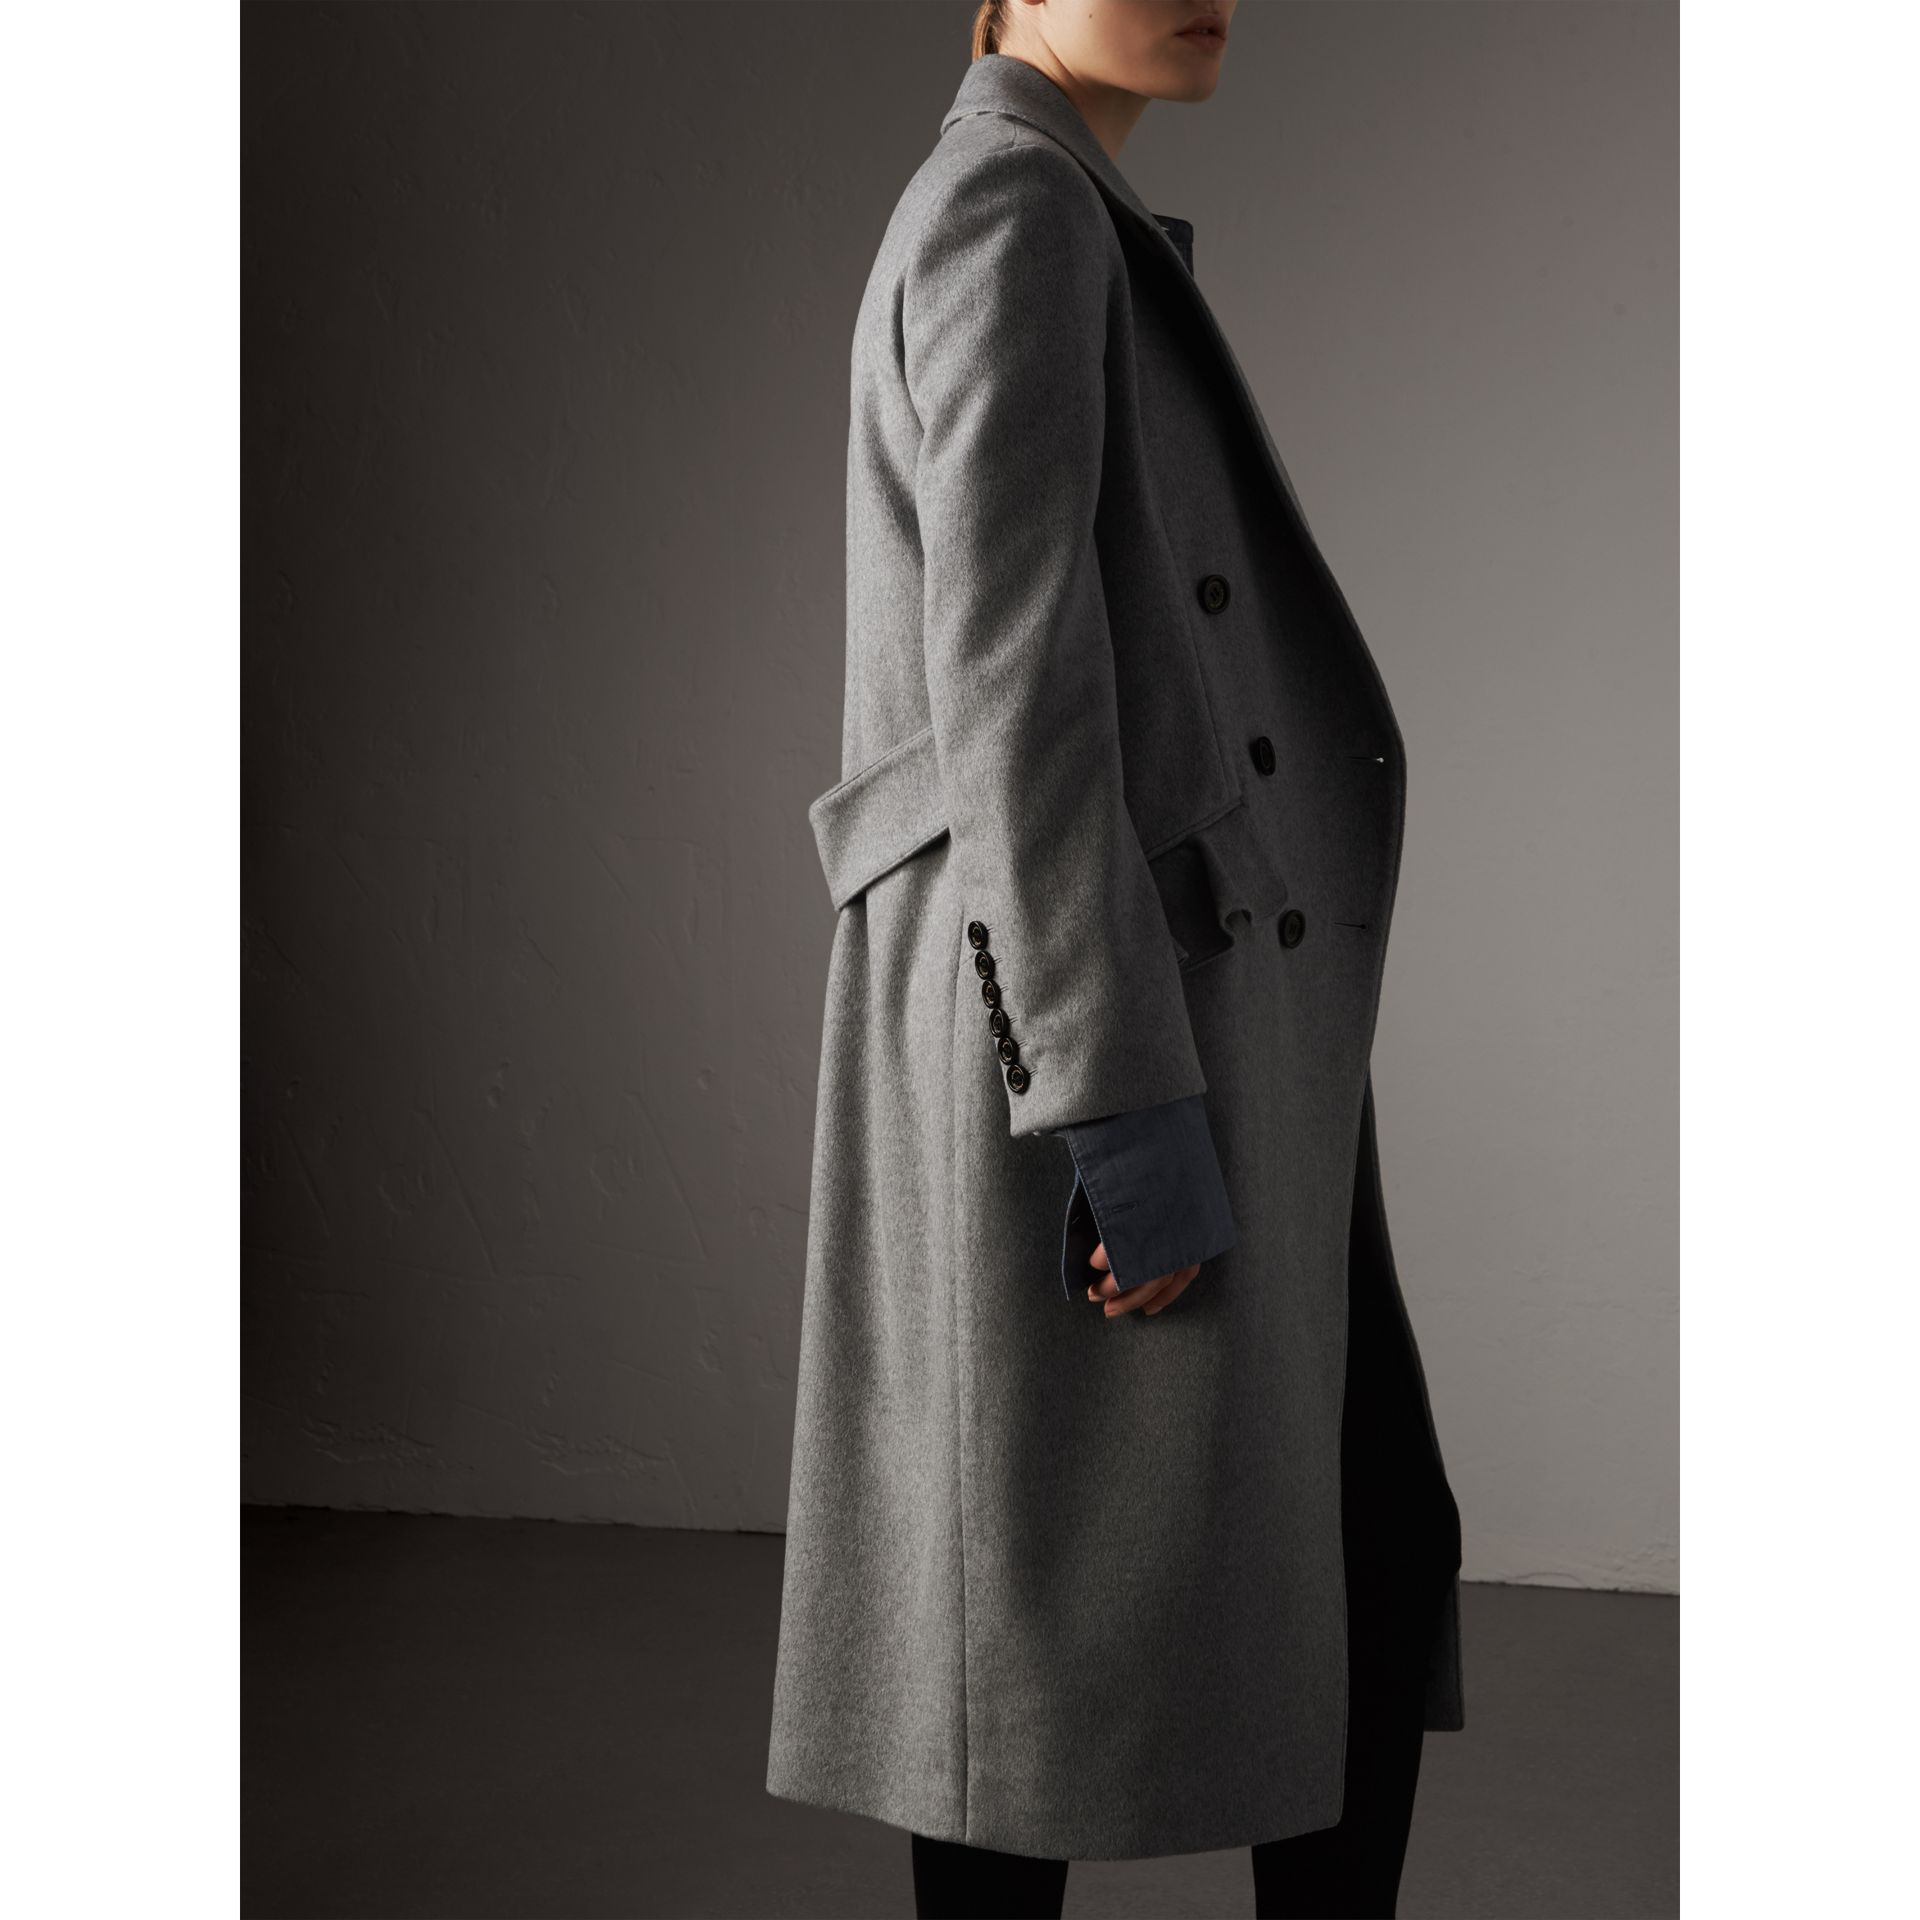 Ruffle Detail Wool Cashmere Tailored Coat in Pale Grey Melange - Women | Burberry Australia - gallery image 3